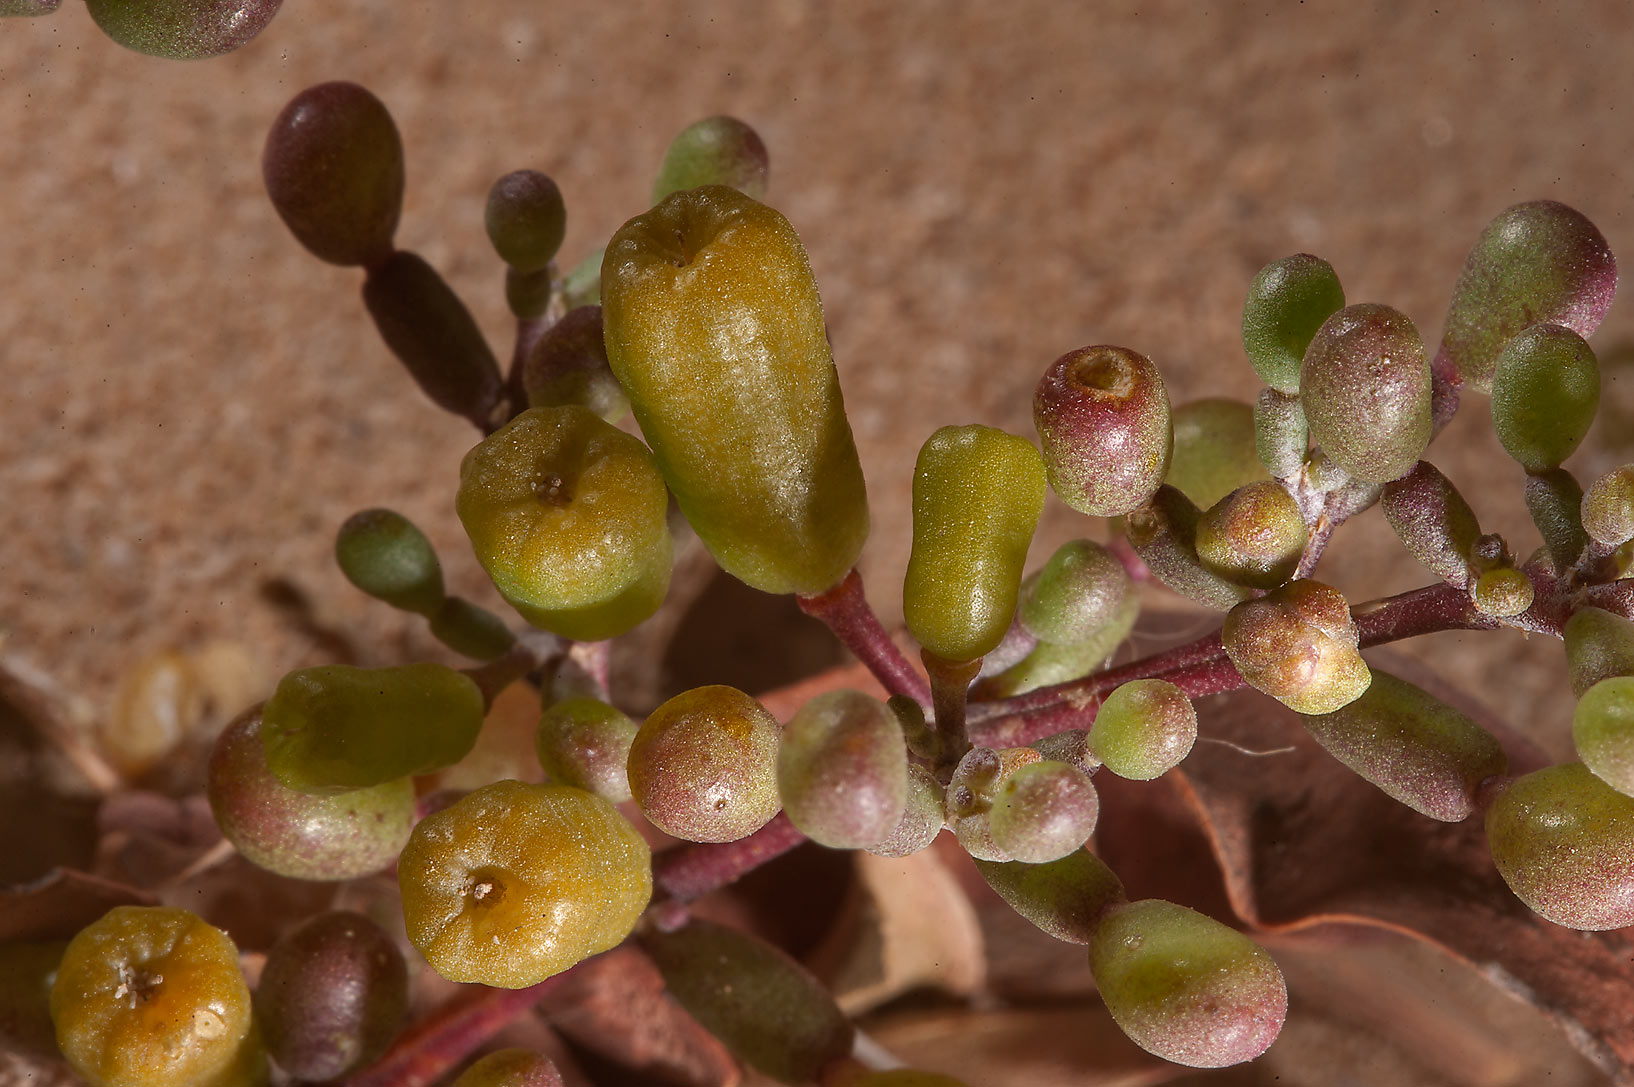 Close up of Tetraena qatarense (Zygophyllum qatarense) plant near Al Khor Hospital. Qatar